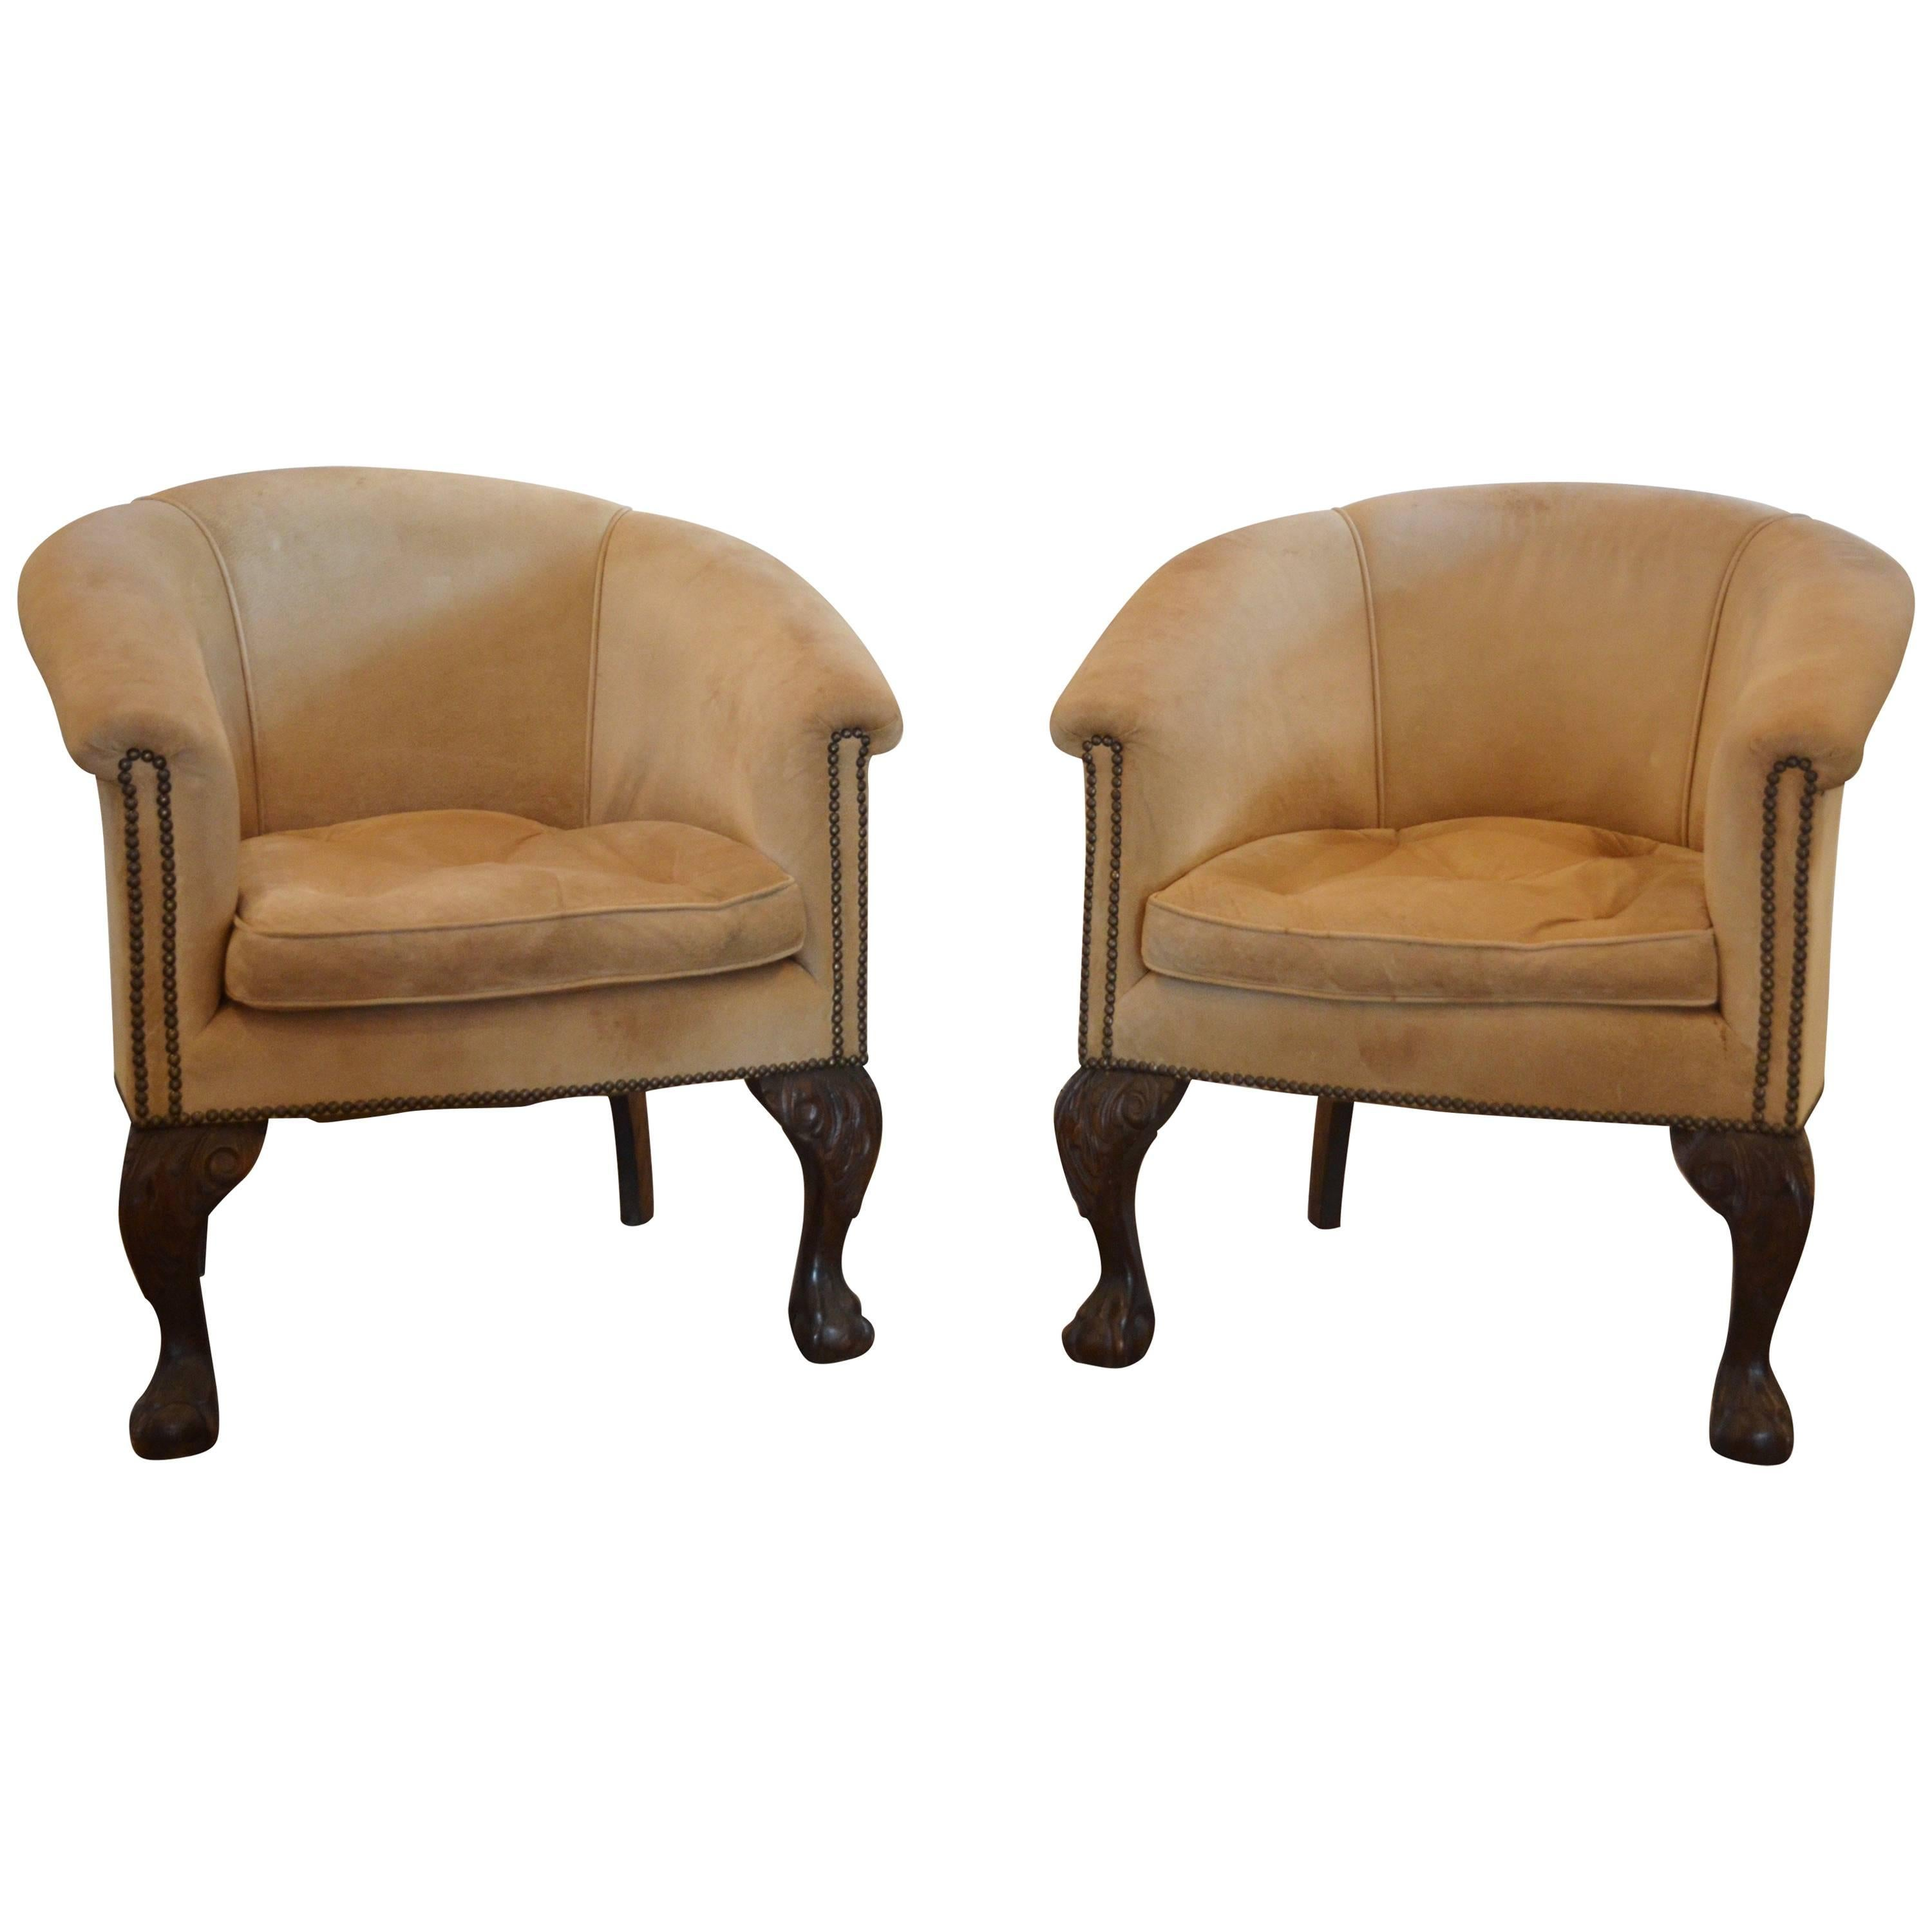 Vintage Barrel Back Chairs In Suede With Ball And Claw 1